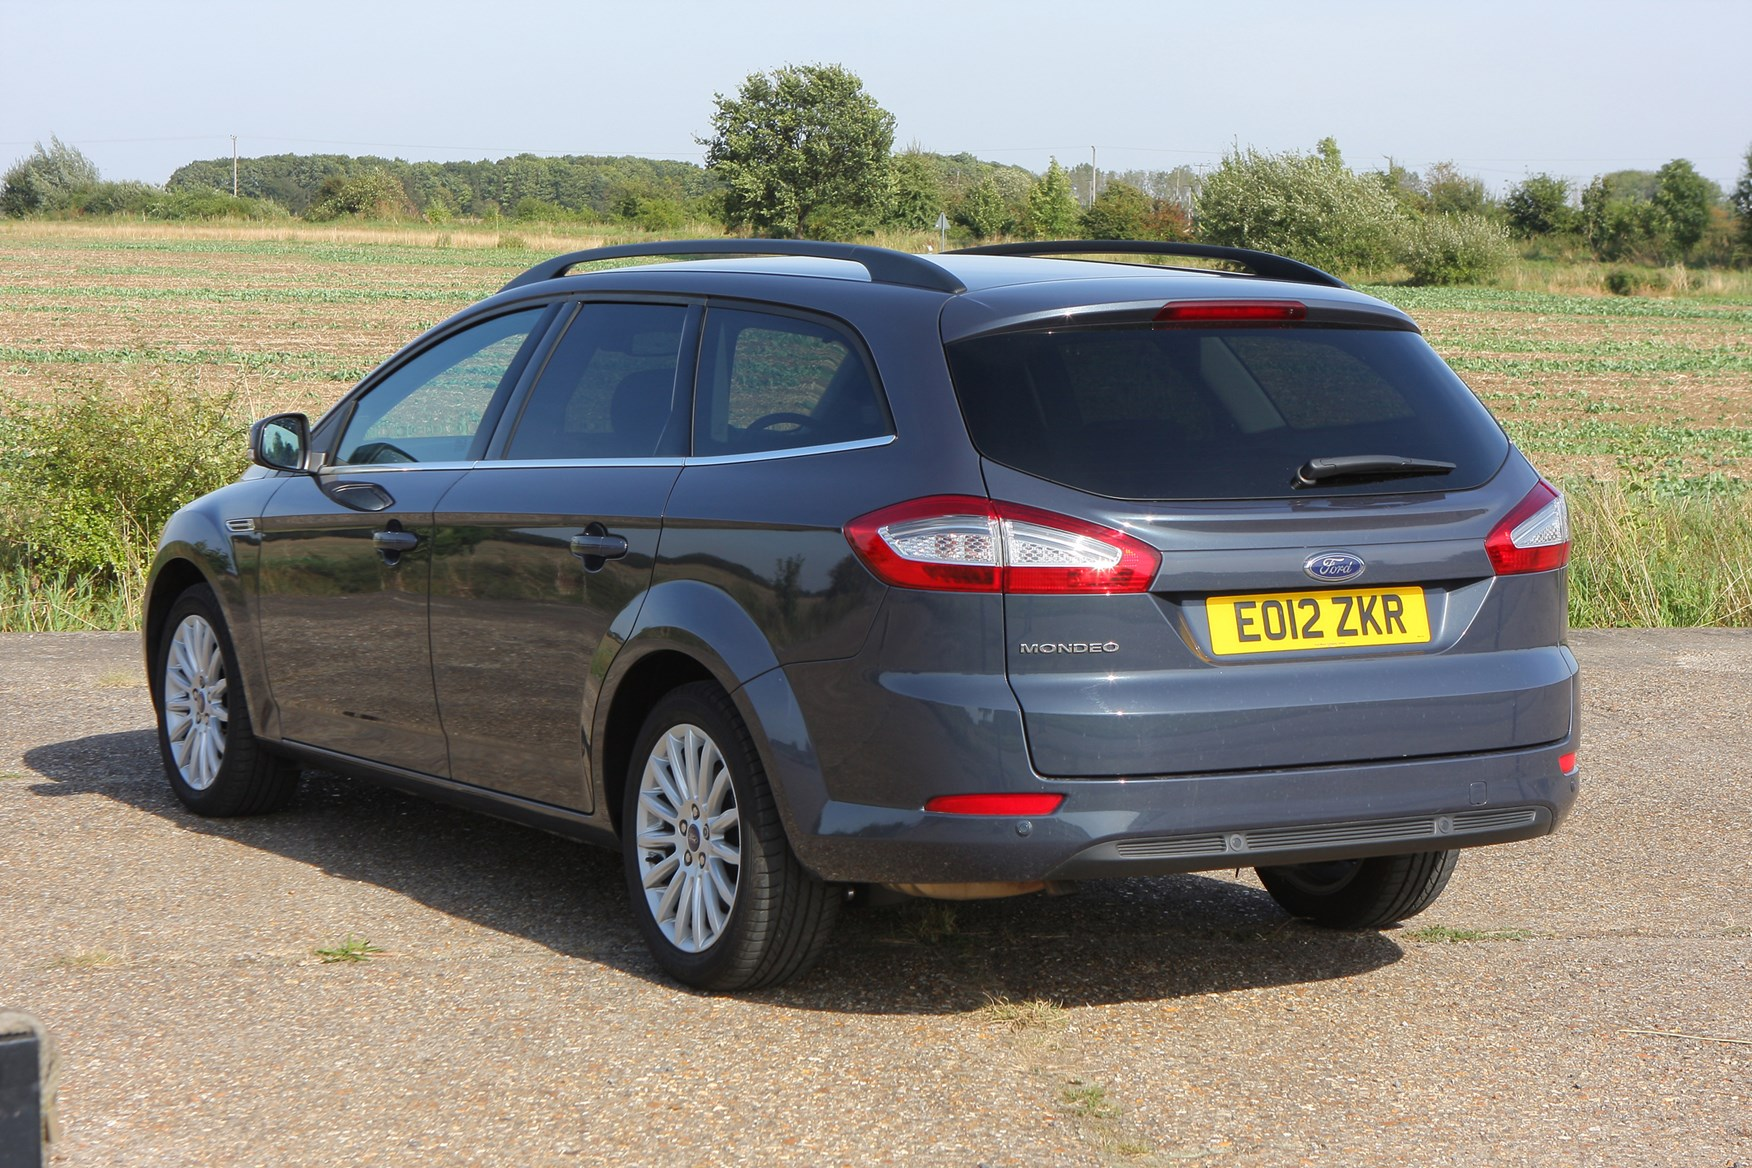 Ford Mondeo Estate prices & specifications | Carbuyer